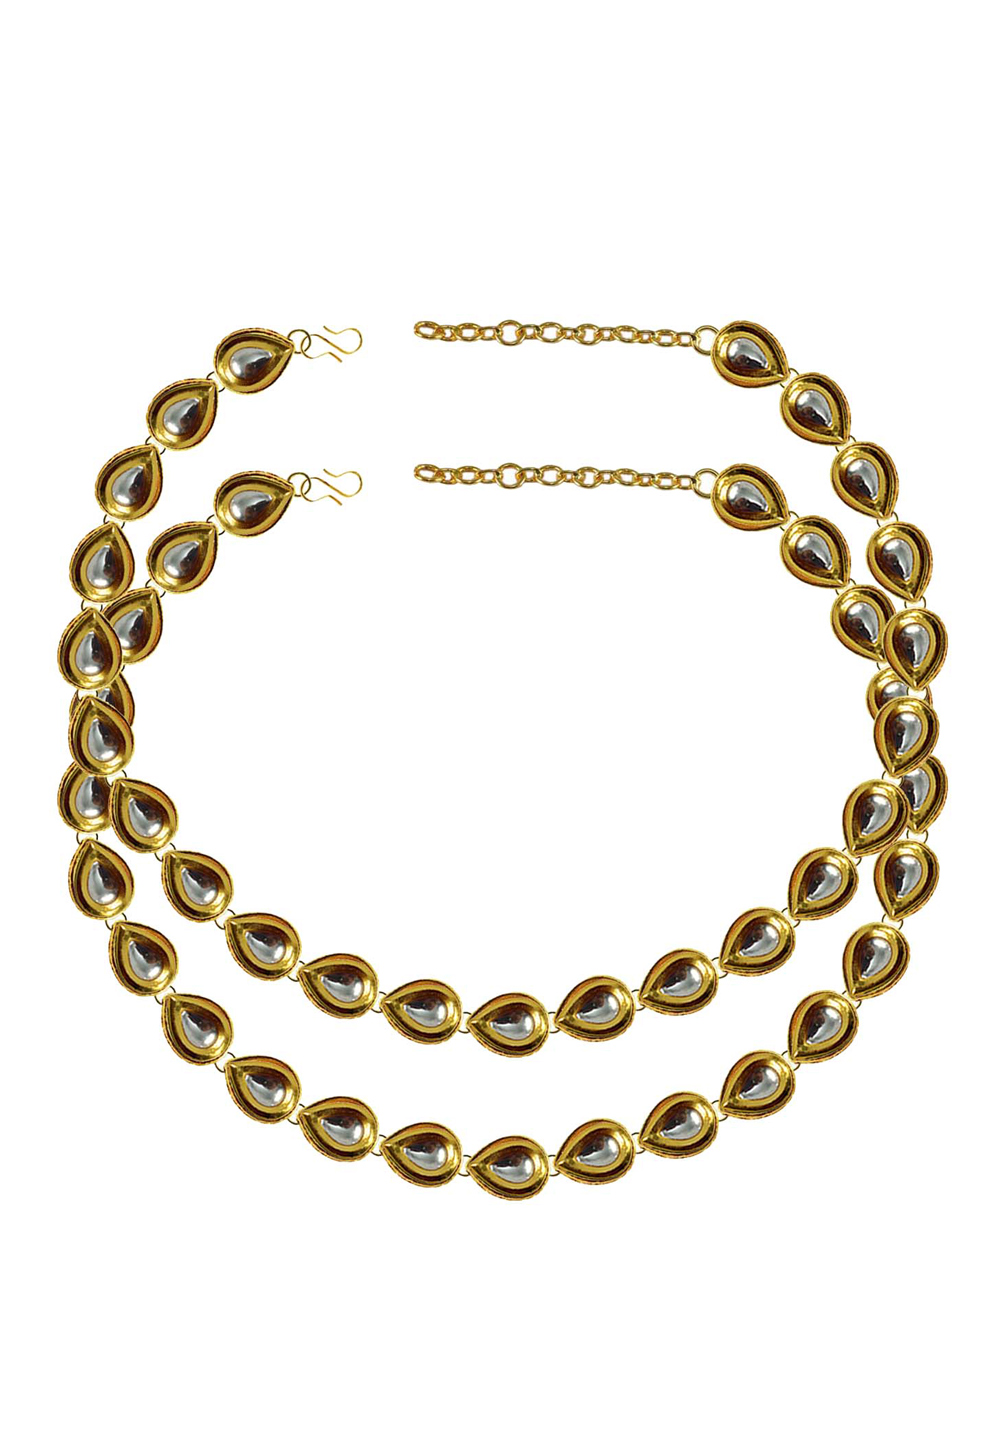 White Brass Gold Plated Anklets 171392